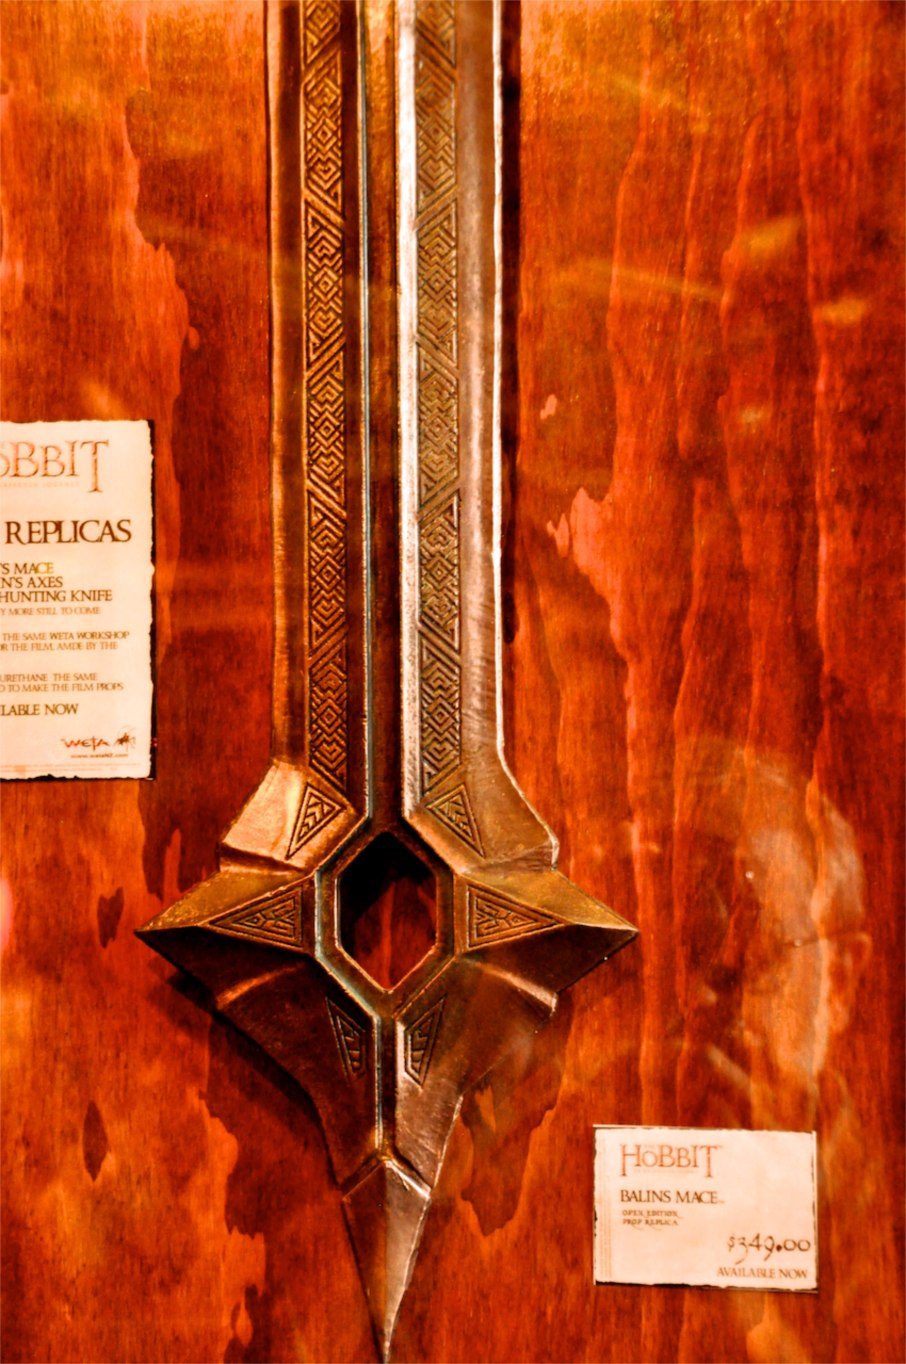 Hobbit - Balin's Mace detail